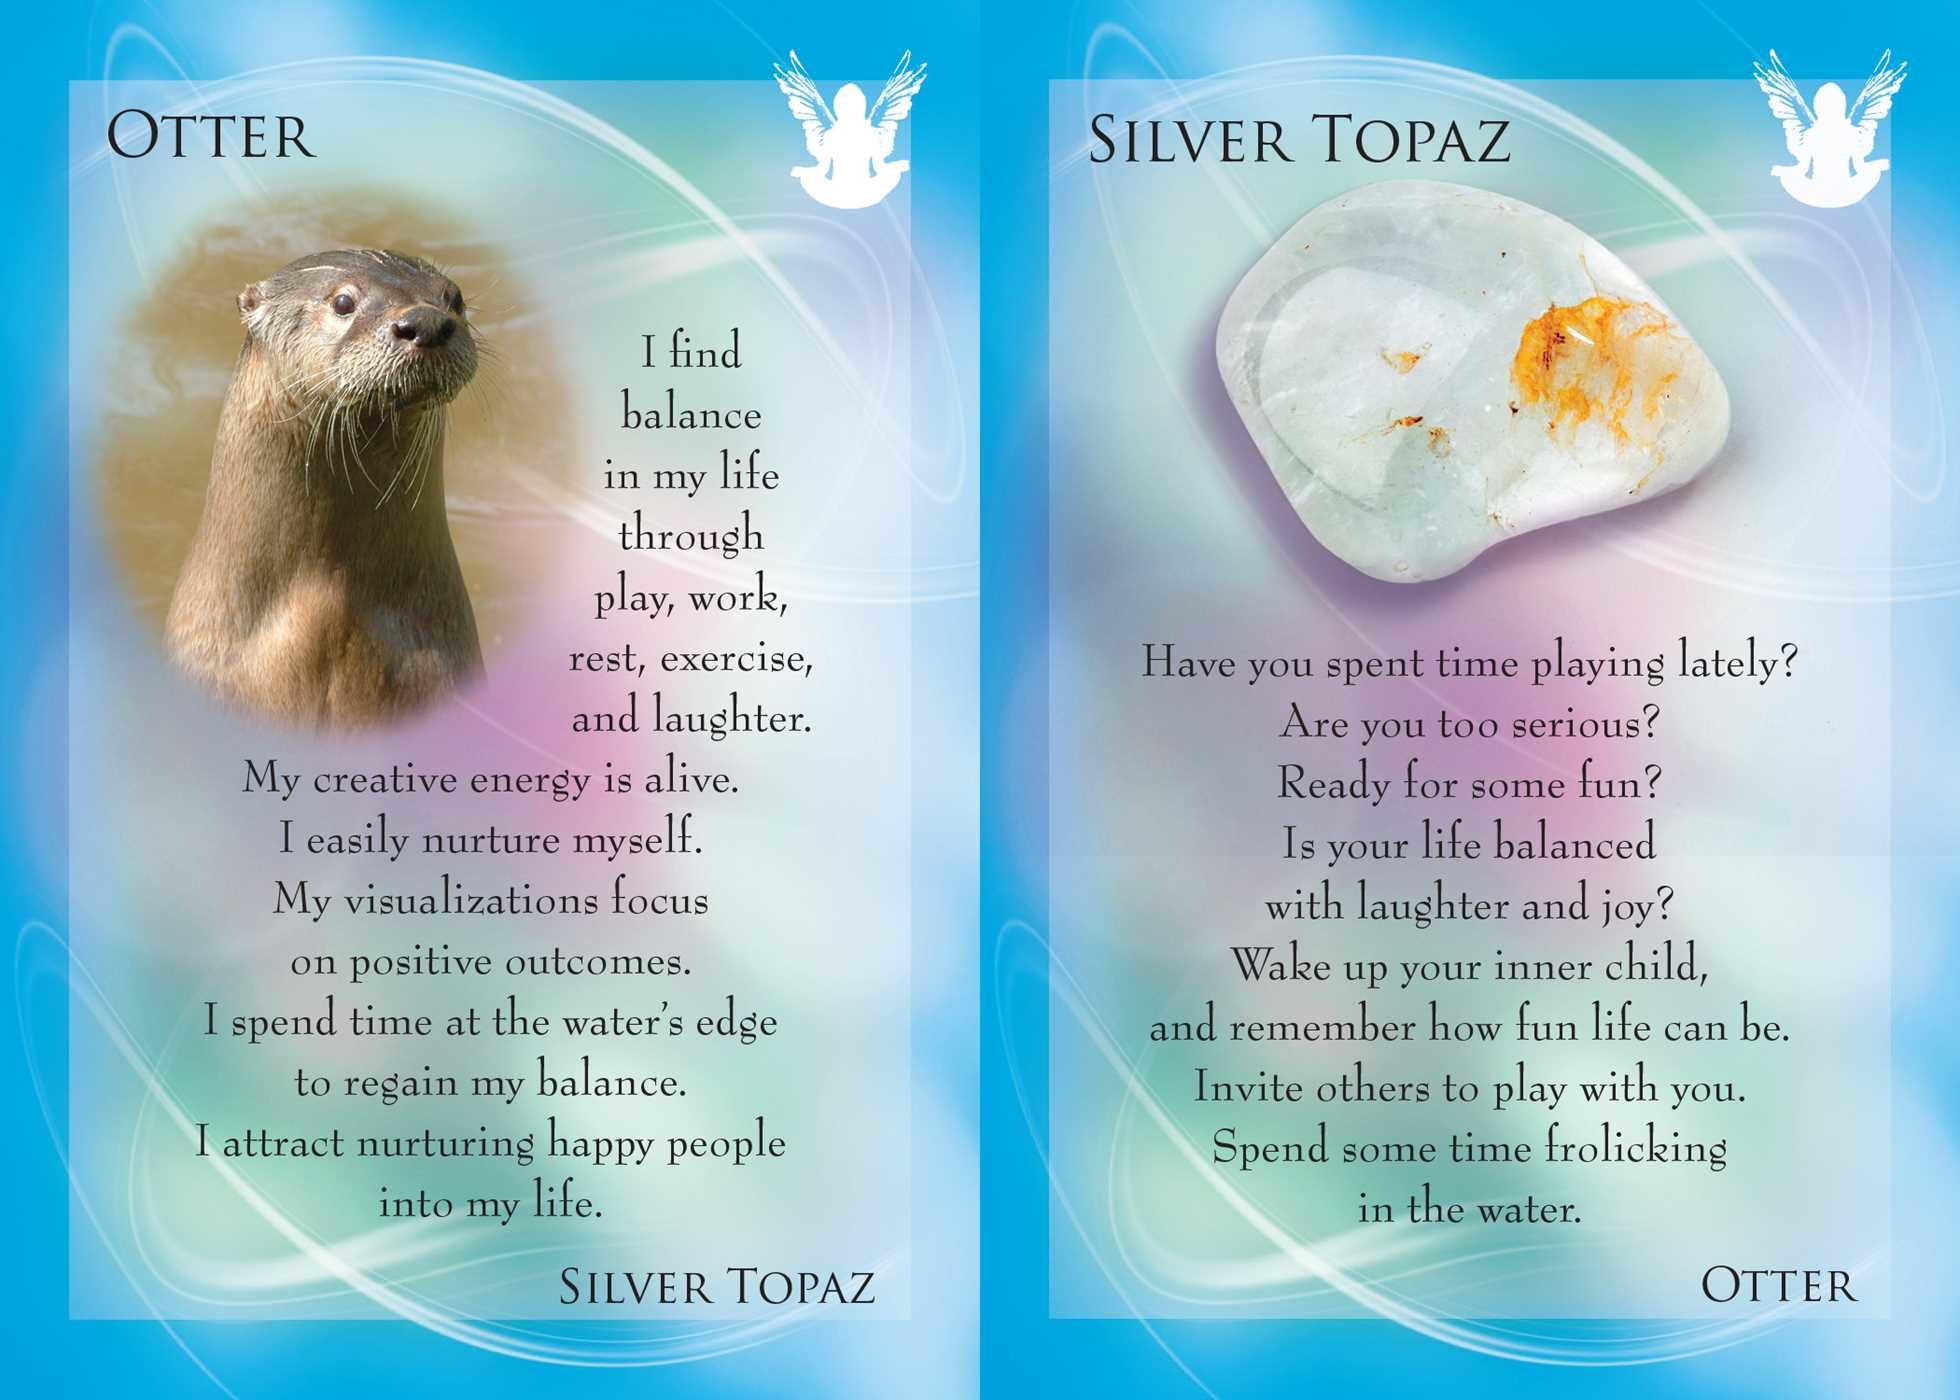 The animal allies and gemstone guardians cards 9781844097418.in04